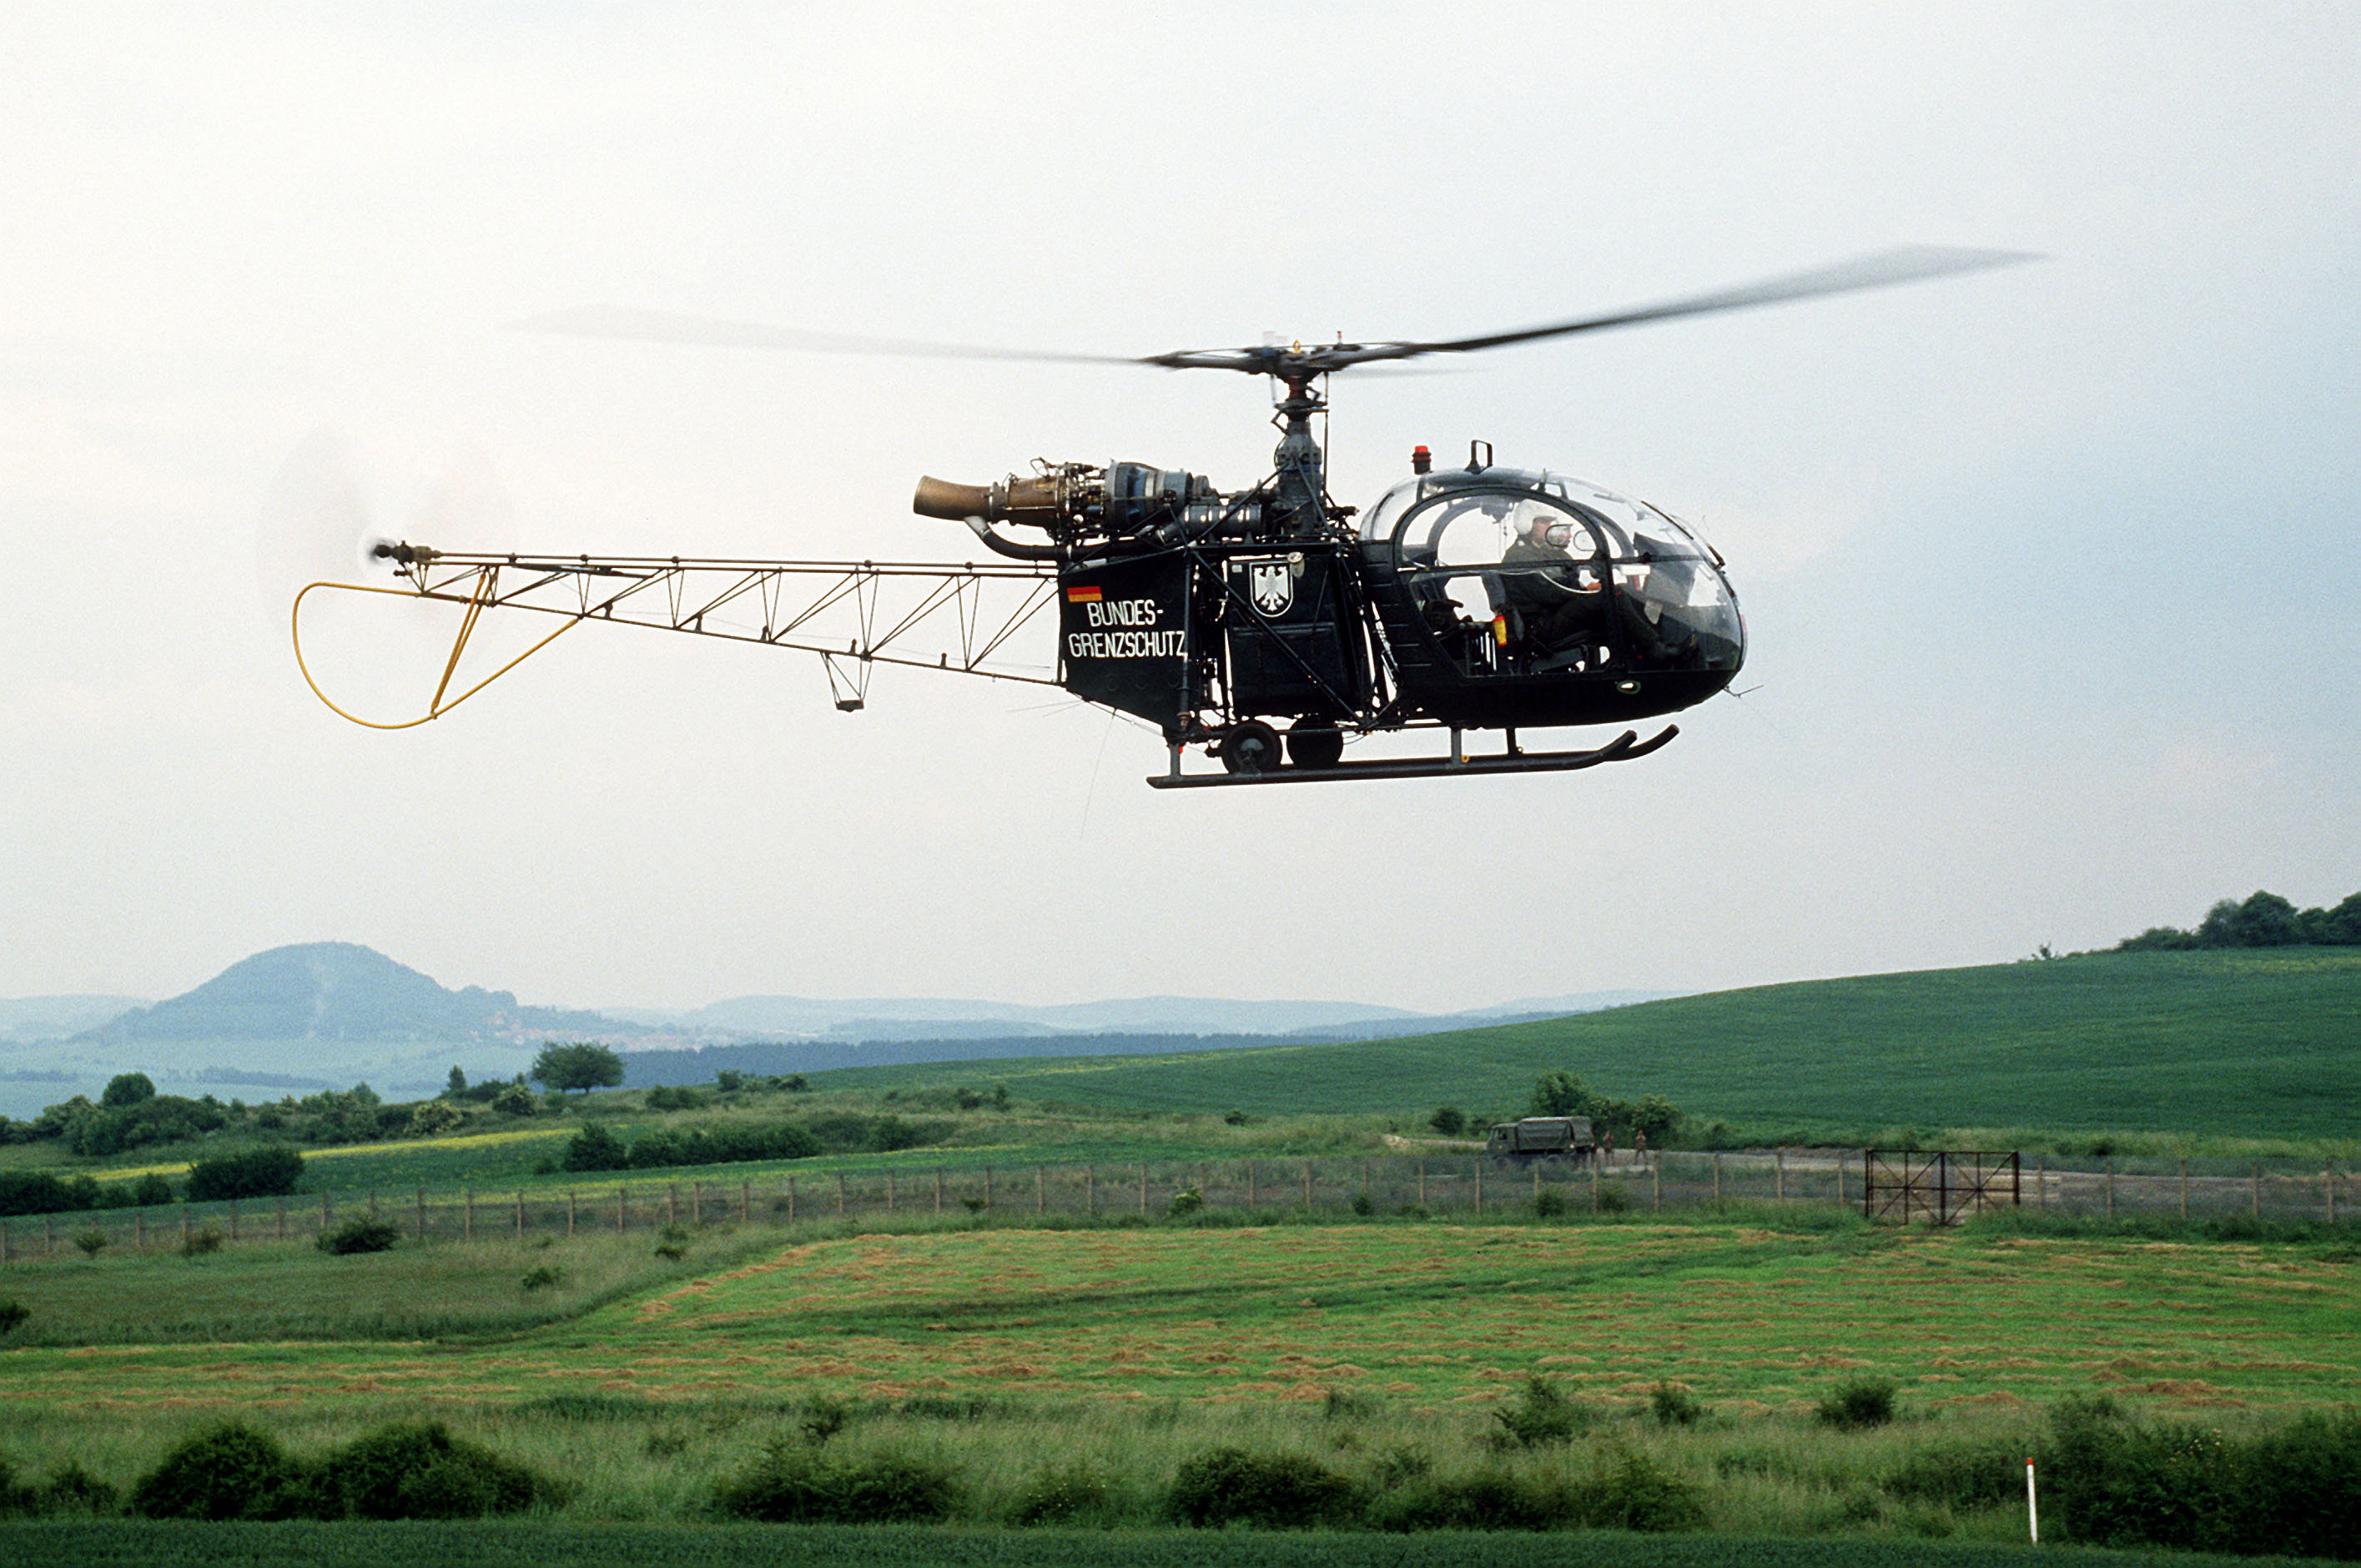 """Green-painted helicopter with """"Bundesgrenzschutz"""" on the side flies parallel to a border fence with a gate in it, behind which are two East German soldiers and a canvas-sided truck."""